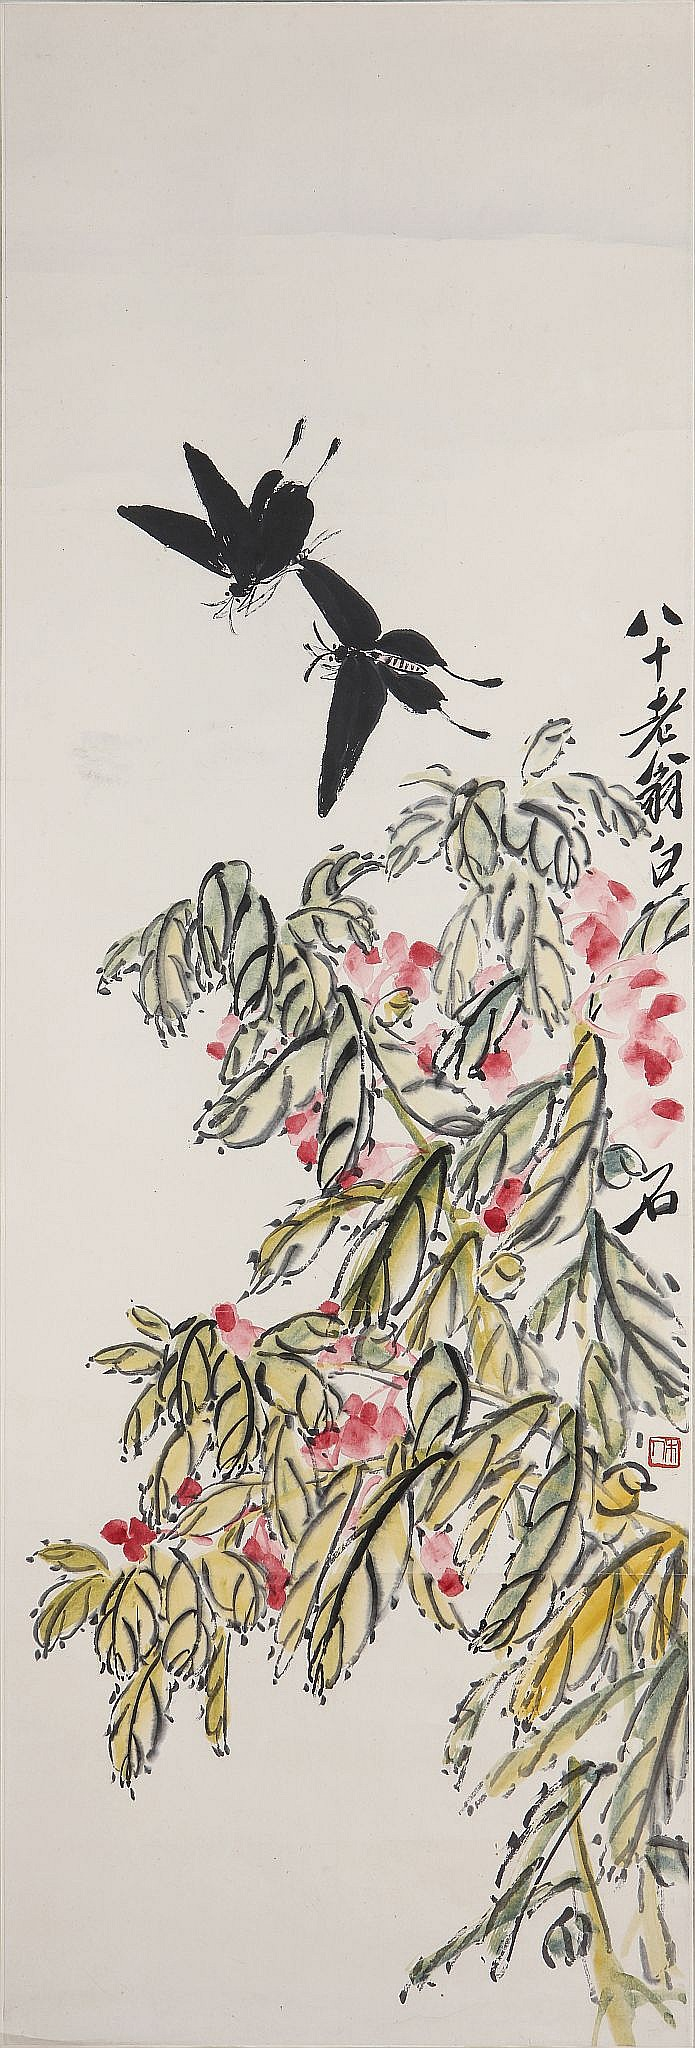 QI BAISHI (1864 – 1957). Garden Balsam and Butterflies, signed BASHI LAOWENG BAISHI, and with one seal of the artist, ink and colour on paper, 1944, hanging scroll, 101 x 36cm. Provenance: Collection of Bernard Buckman (1910 – 1991). ???(1864 - 1957)  ??? ????????? Provenance: Bernard Buckman (1910 – 1991) collection.